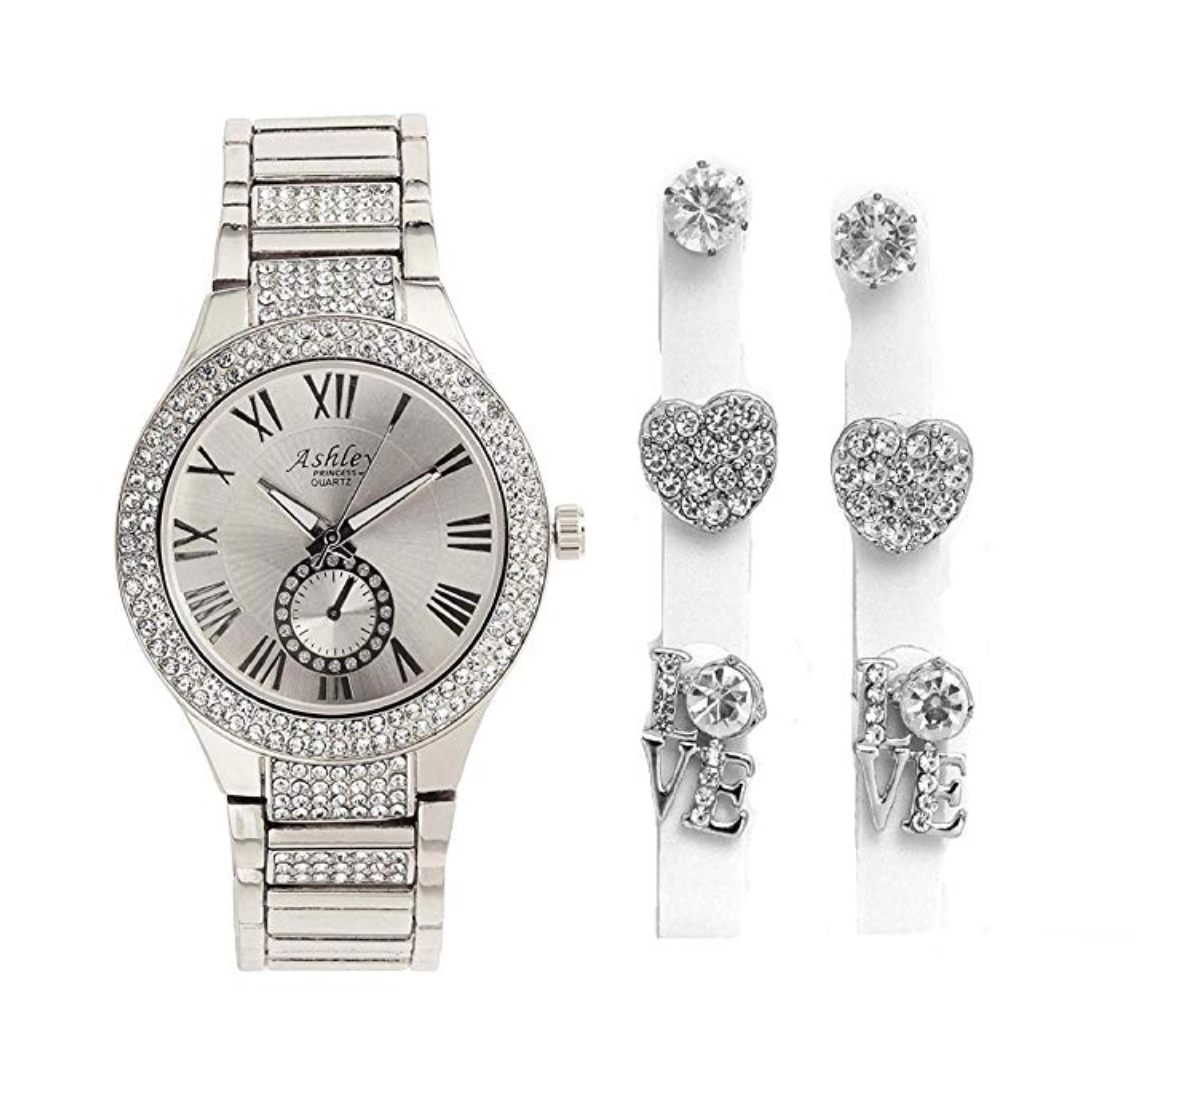 Women's Rose Gold Diamond Watch Heart Earrings Diamond Studs Silver Watch Gift Jewelry